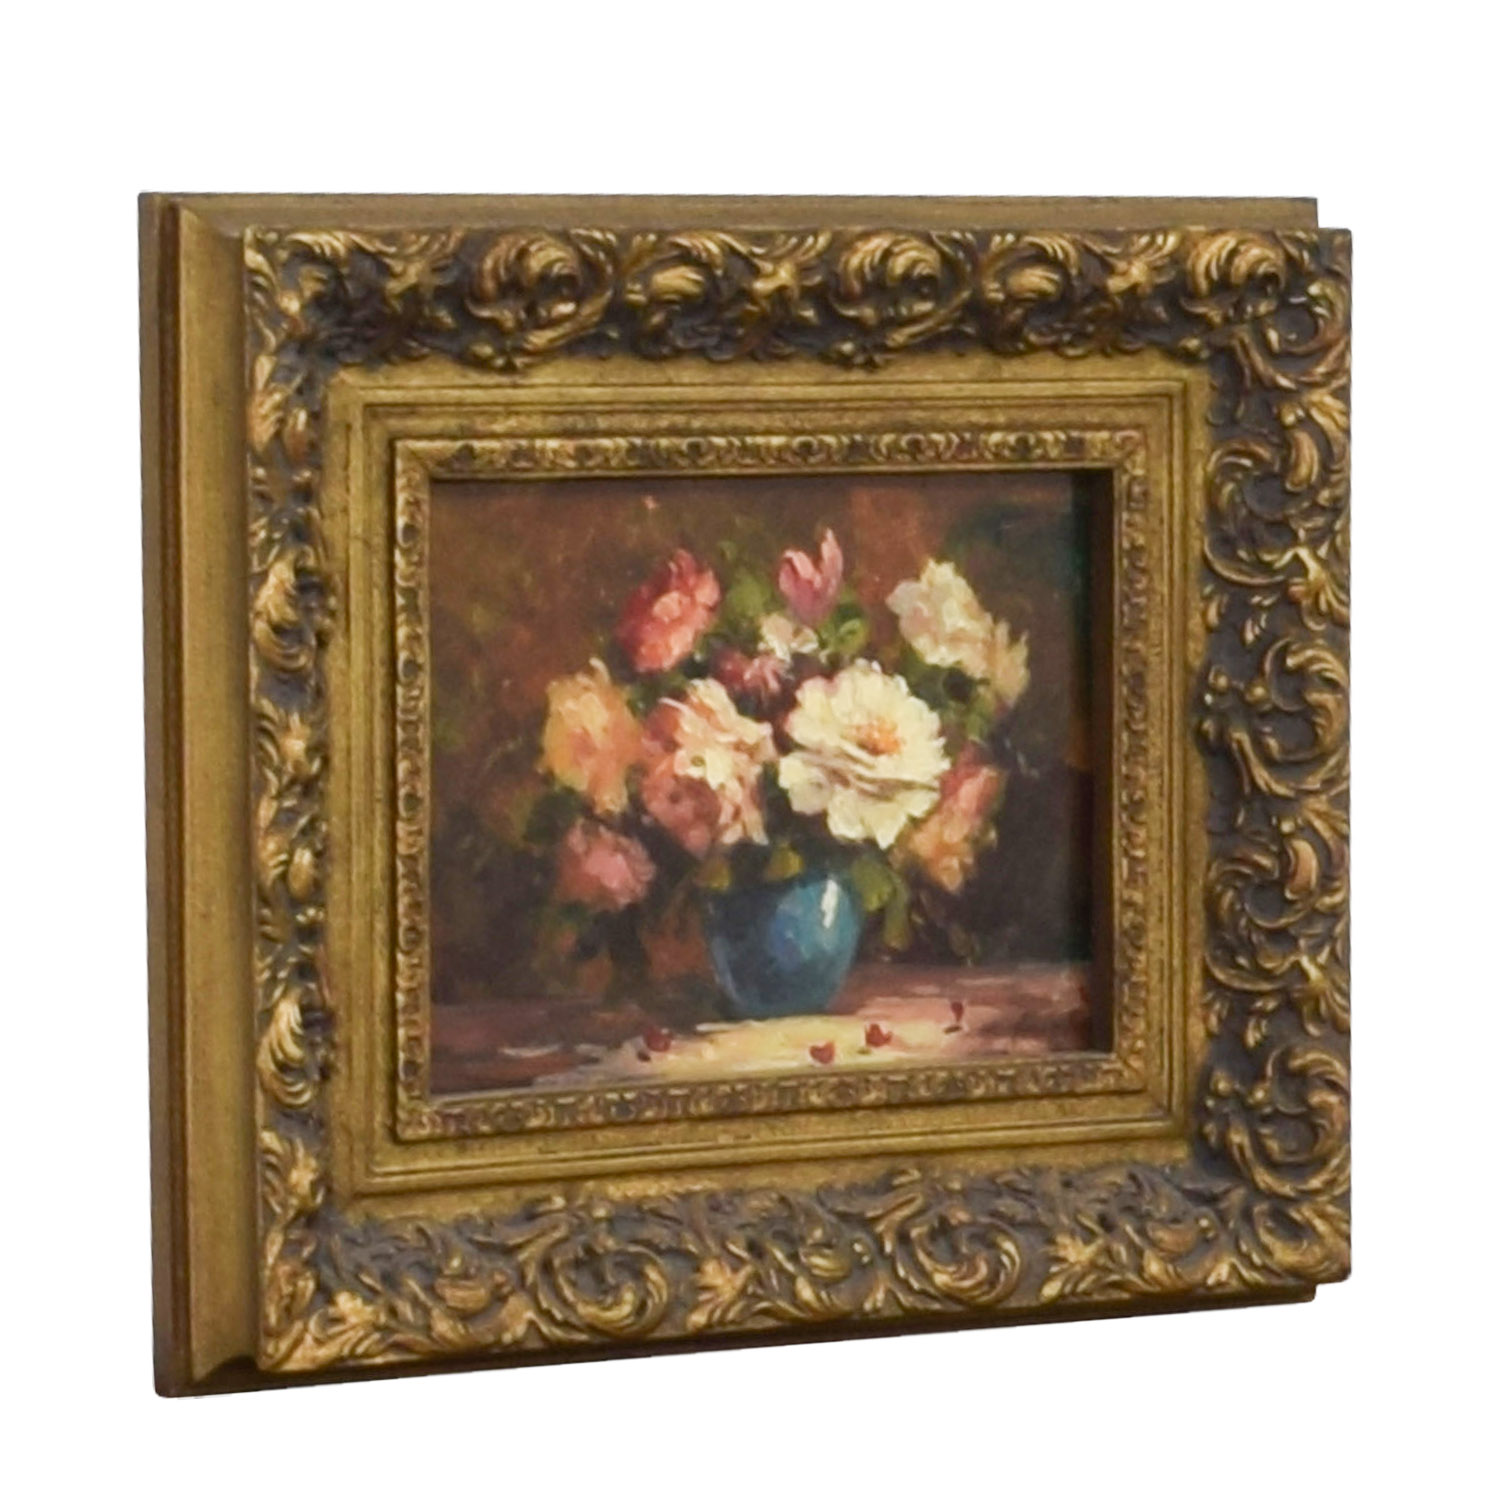 buy Timeless Treasures Signed Floral Framed Oil Painting Timeless Treasures Wall Art